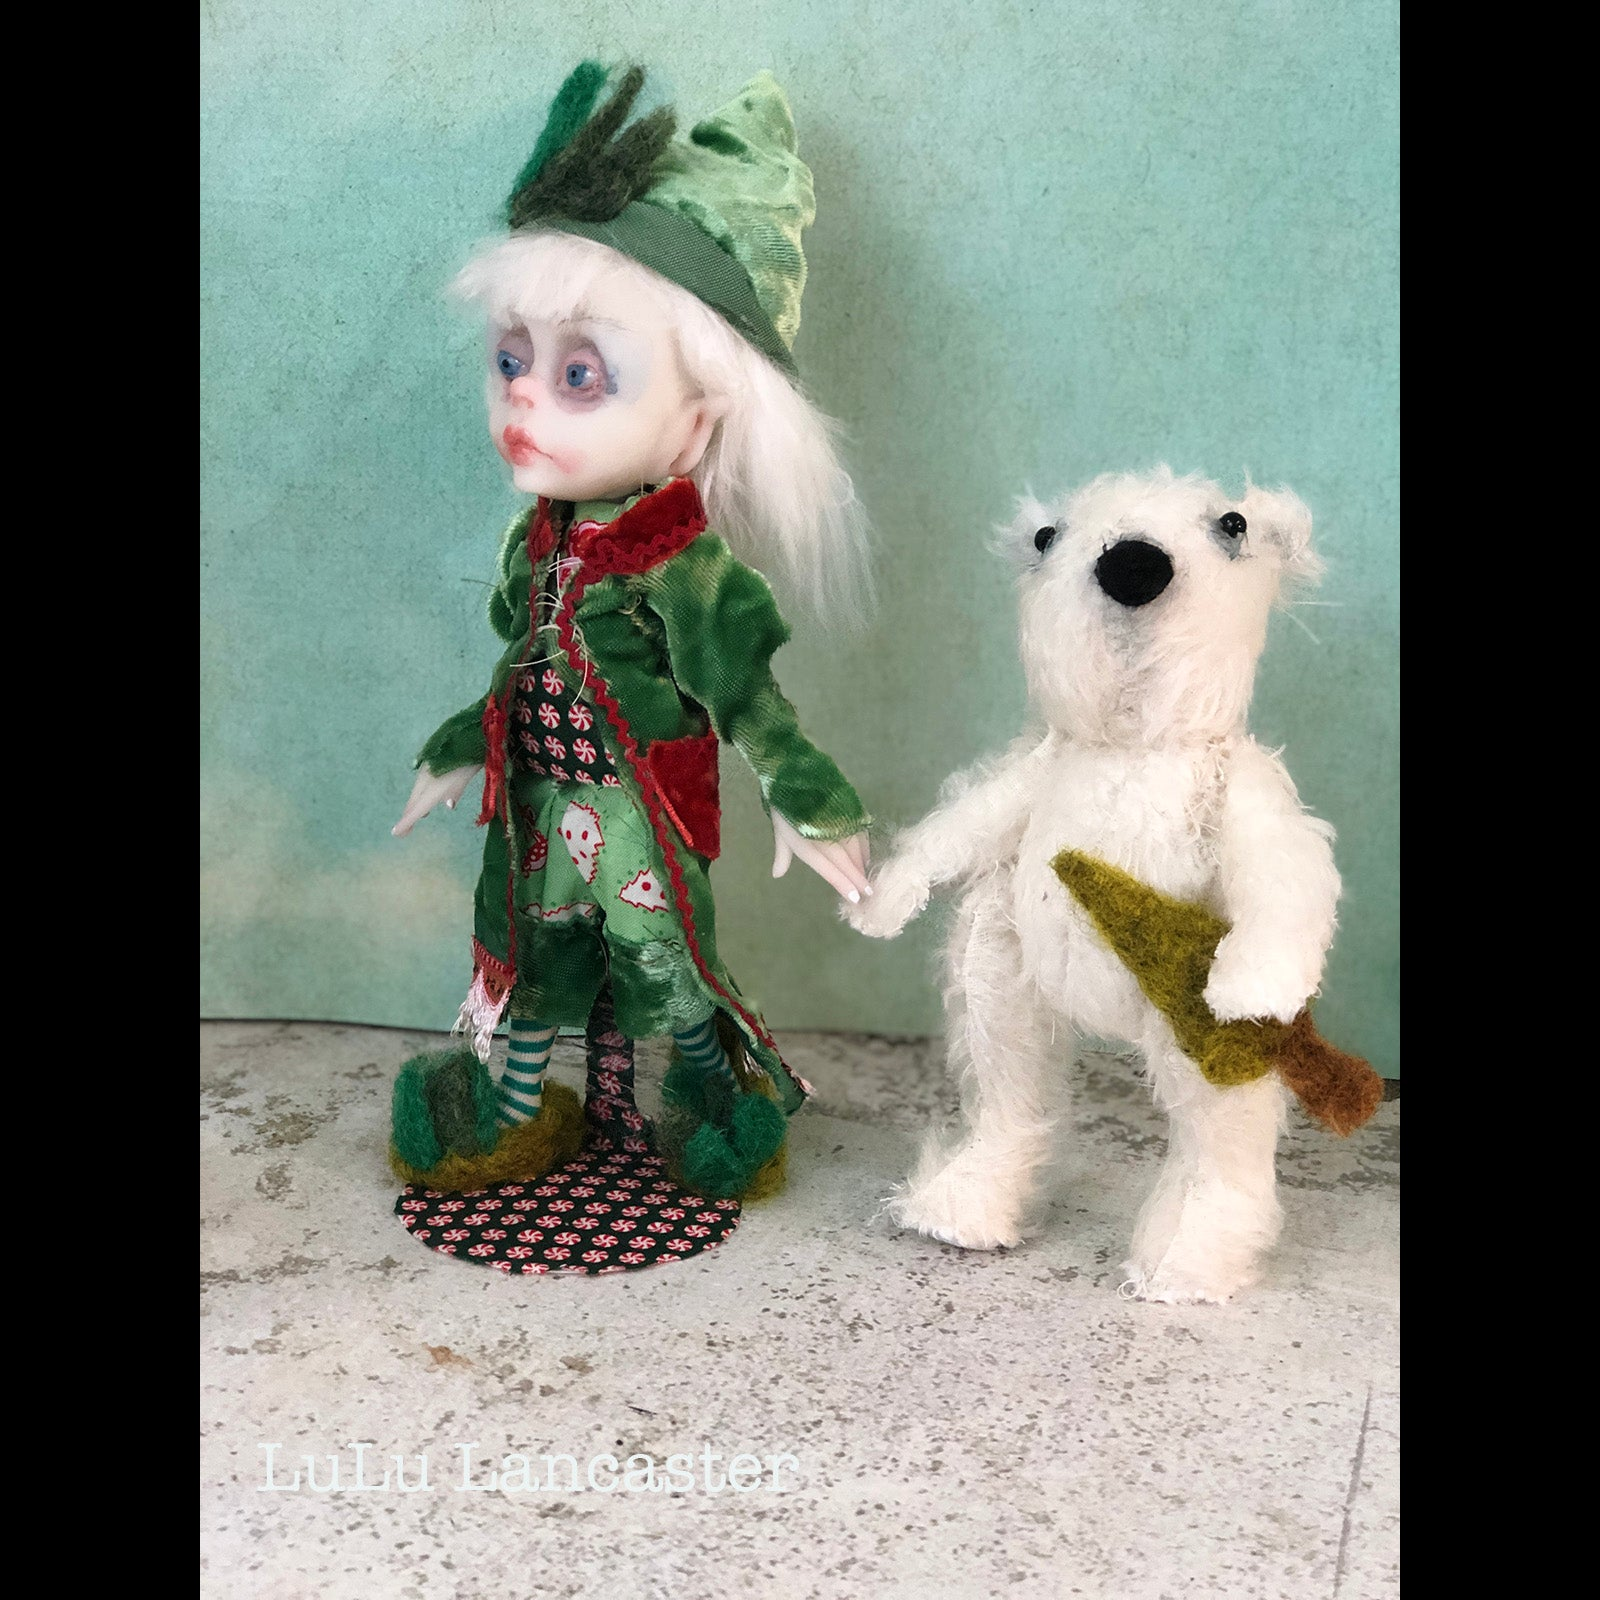 Stickie Sugartree the elf and mohair polar bear Art doll OOAK LuLu Lancaster